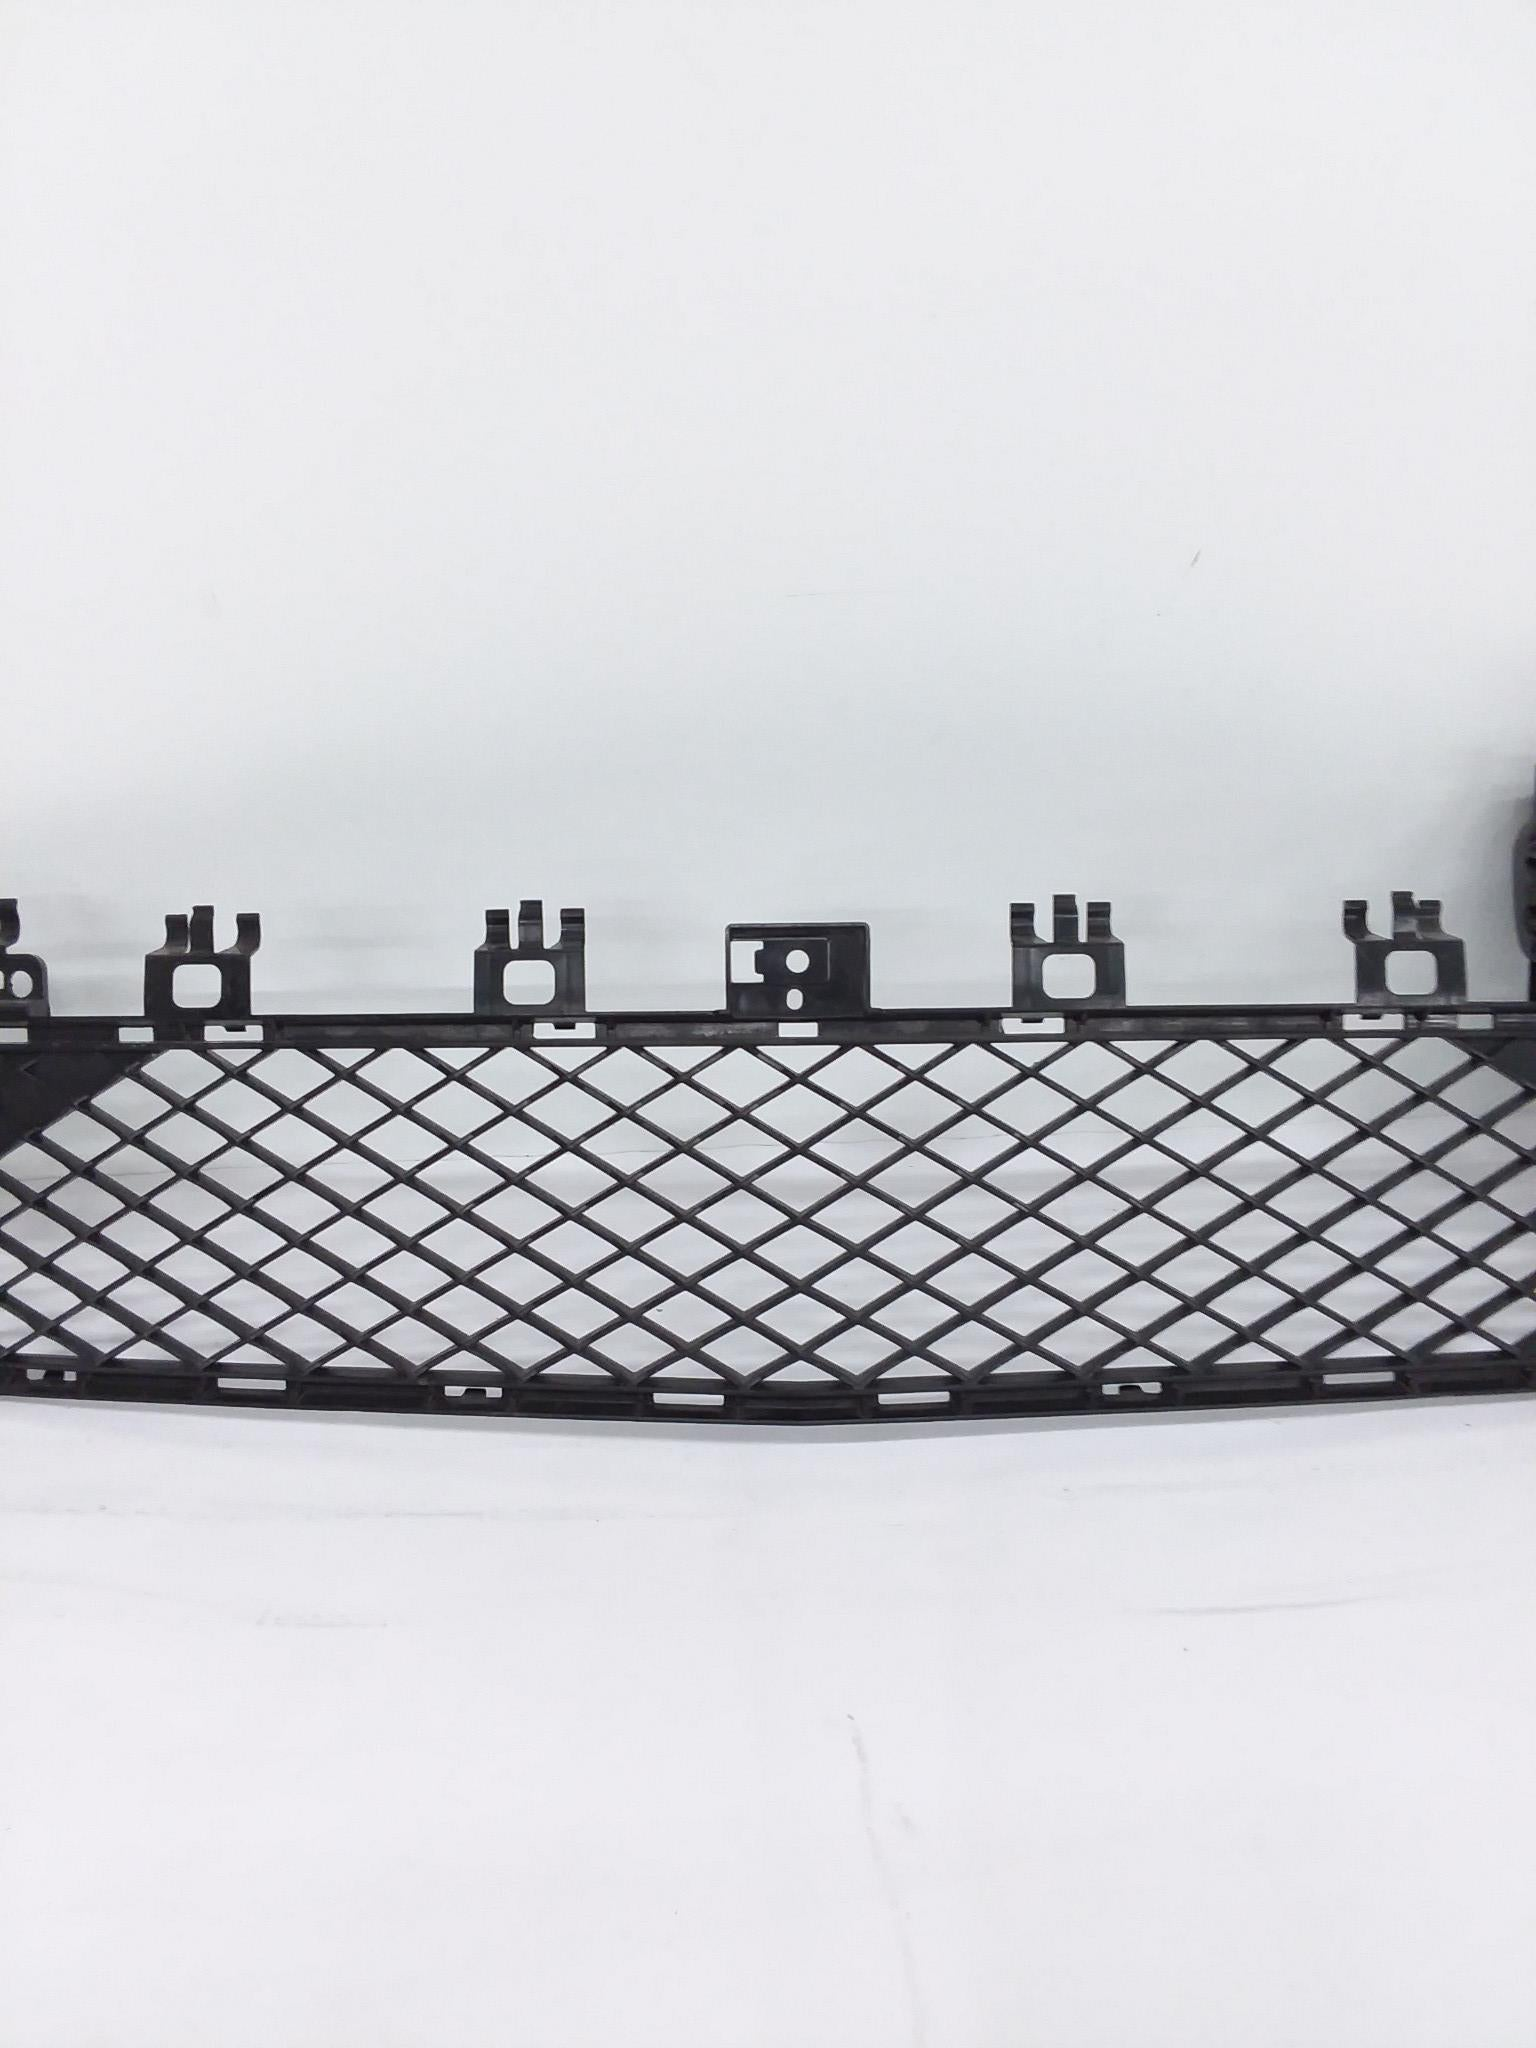 2012 - 2014 Mercedes Benz C-Class C300 C350 Lower Bumper GRILLE A2048850853 OEM